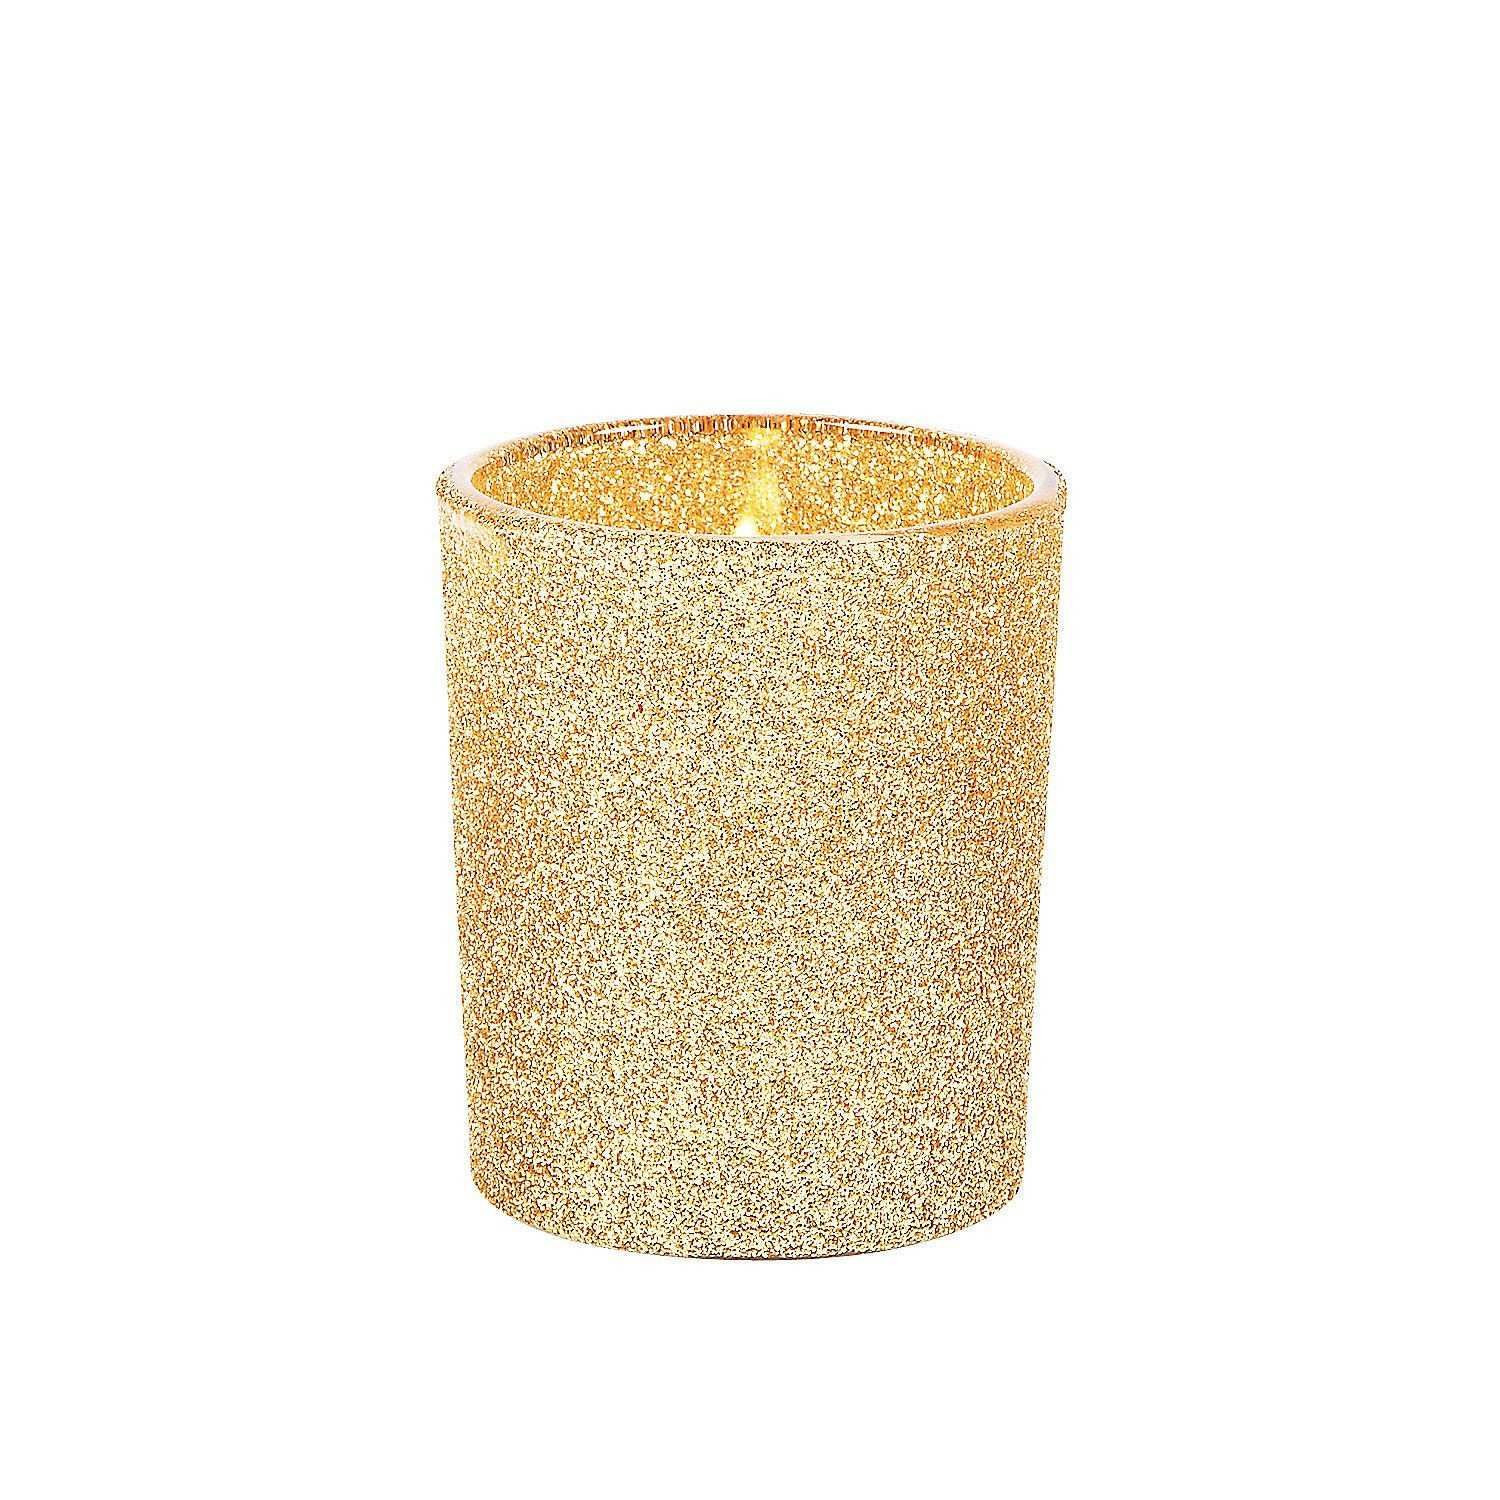 rose gold glitter vase of gold mercury glass vases awesome inspiration gold votive candles in gold mercury glass vases awesome inspiration gold votive candles with gold glitter votive holders